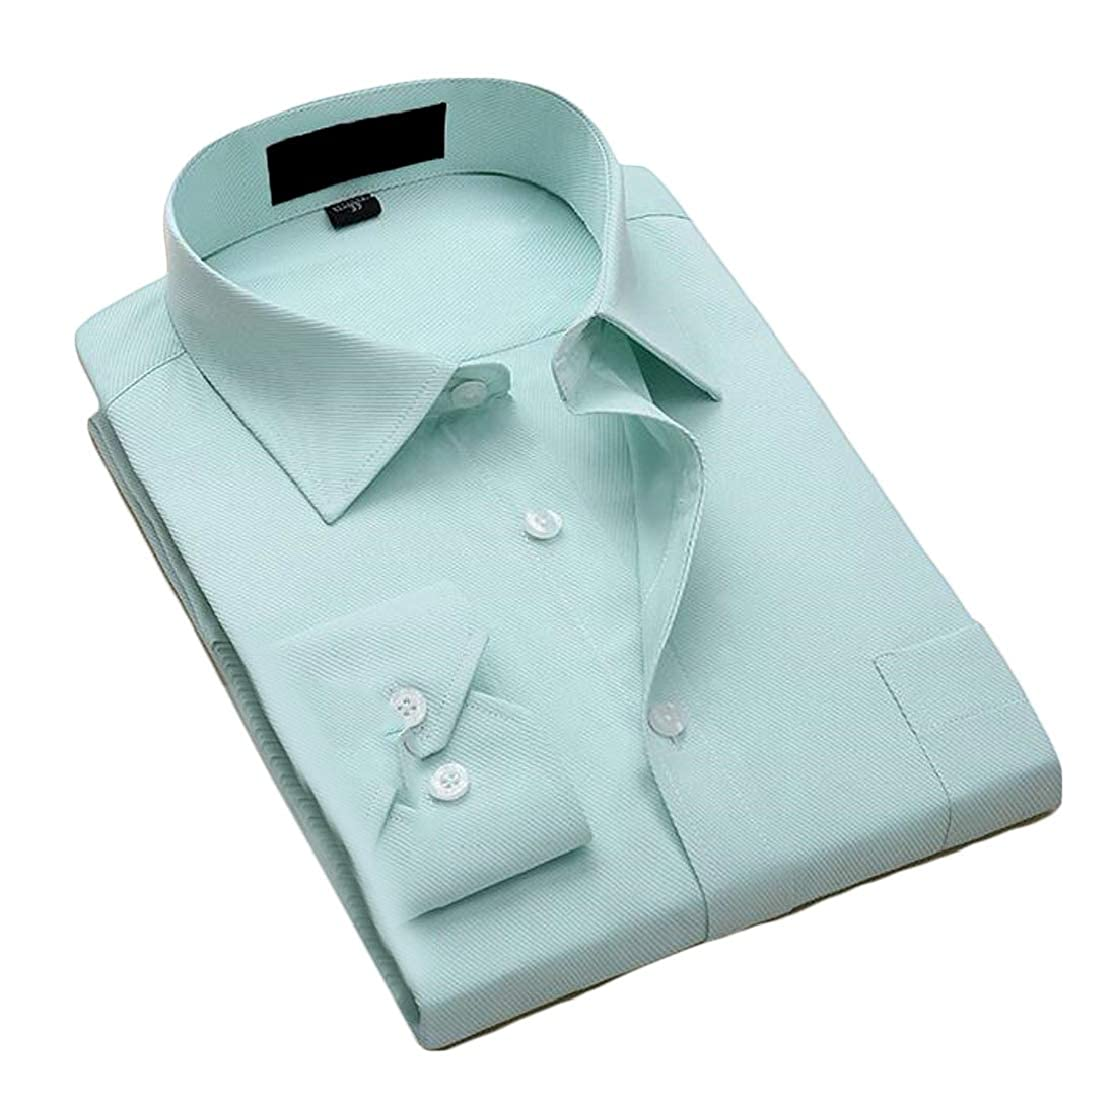 Joe Wenko Mens Solid Button Up Long Sleeve Point Collar Business Shirts